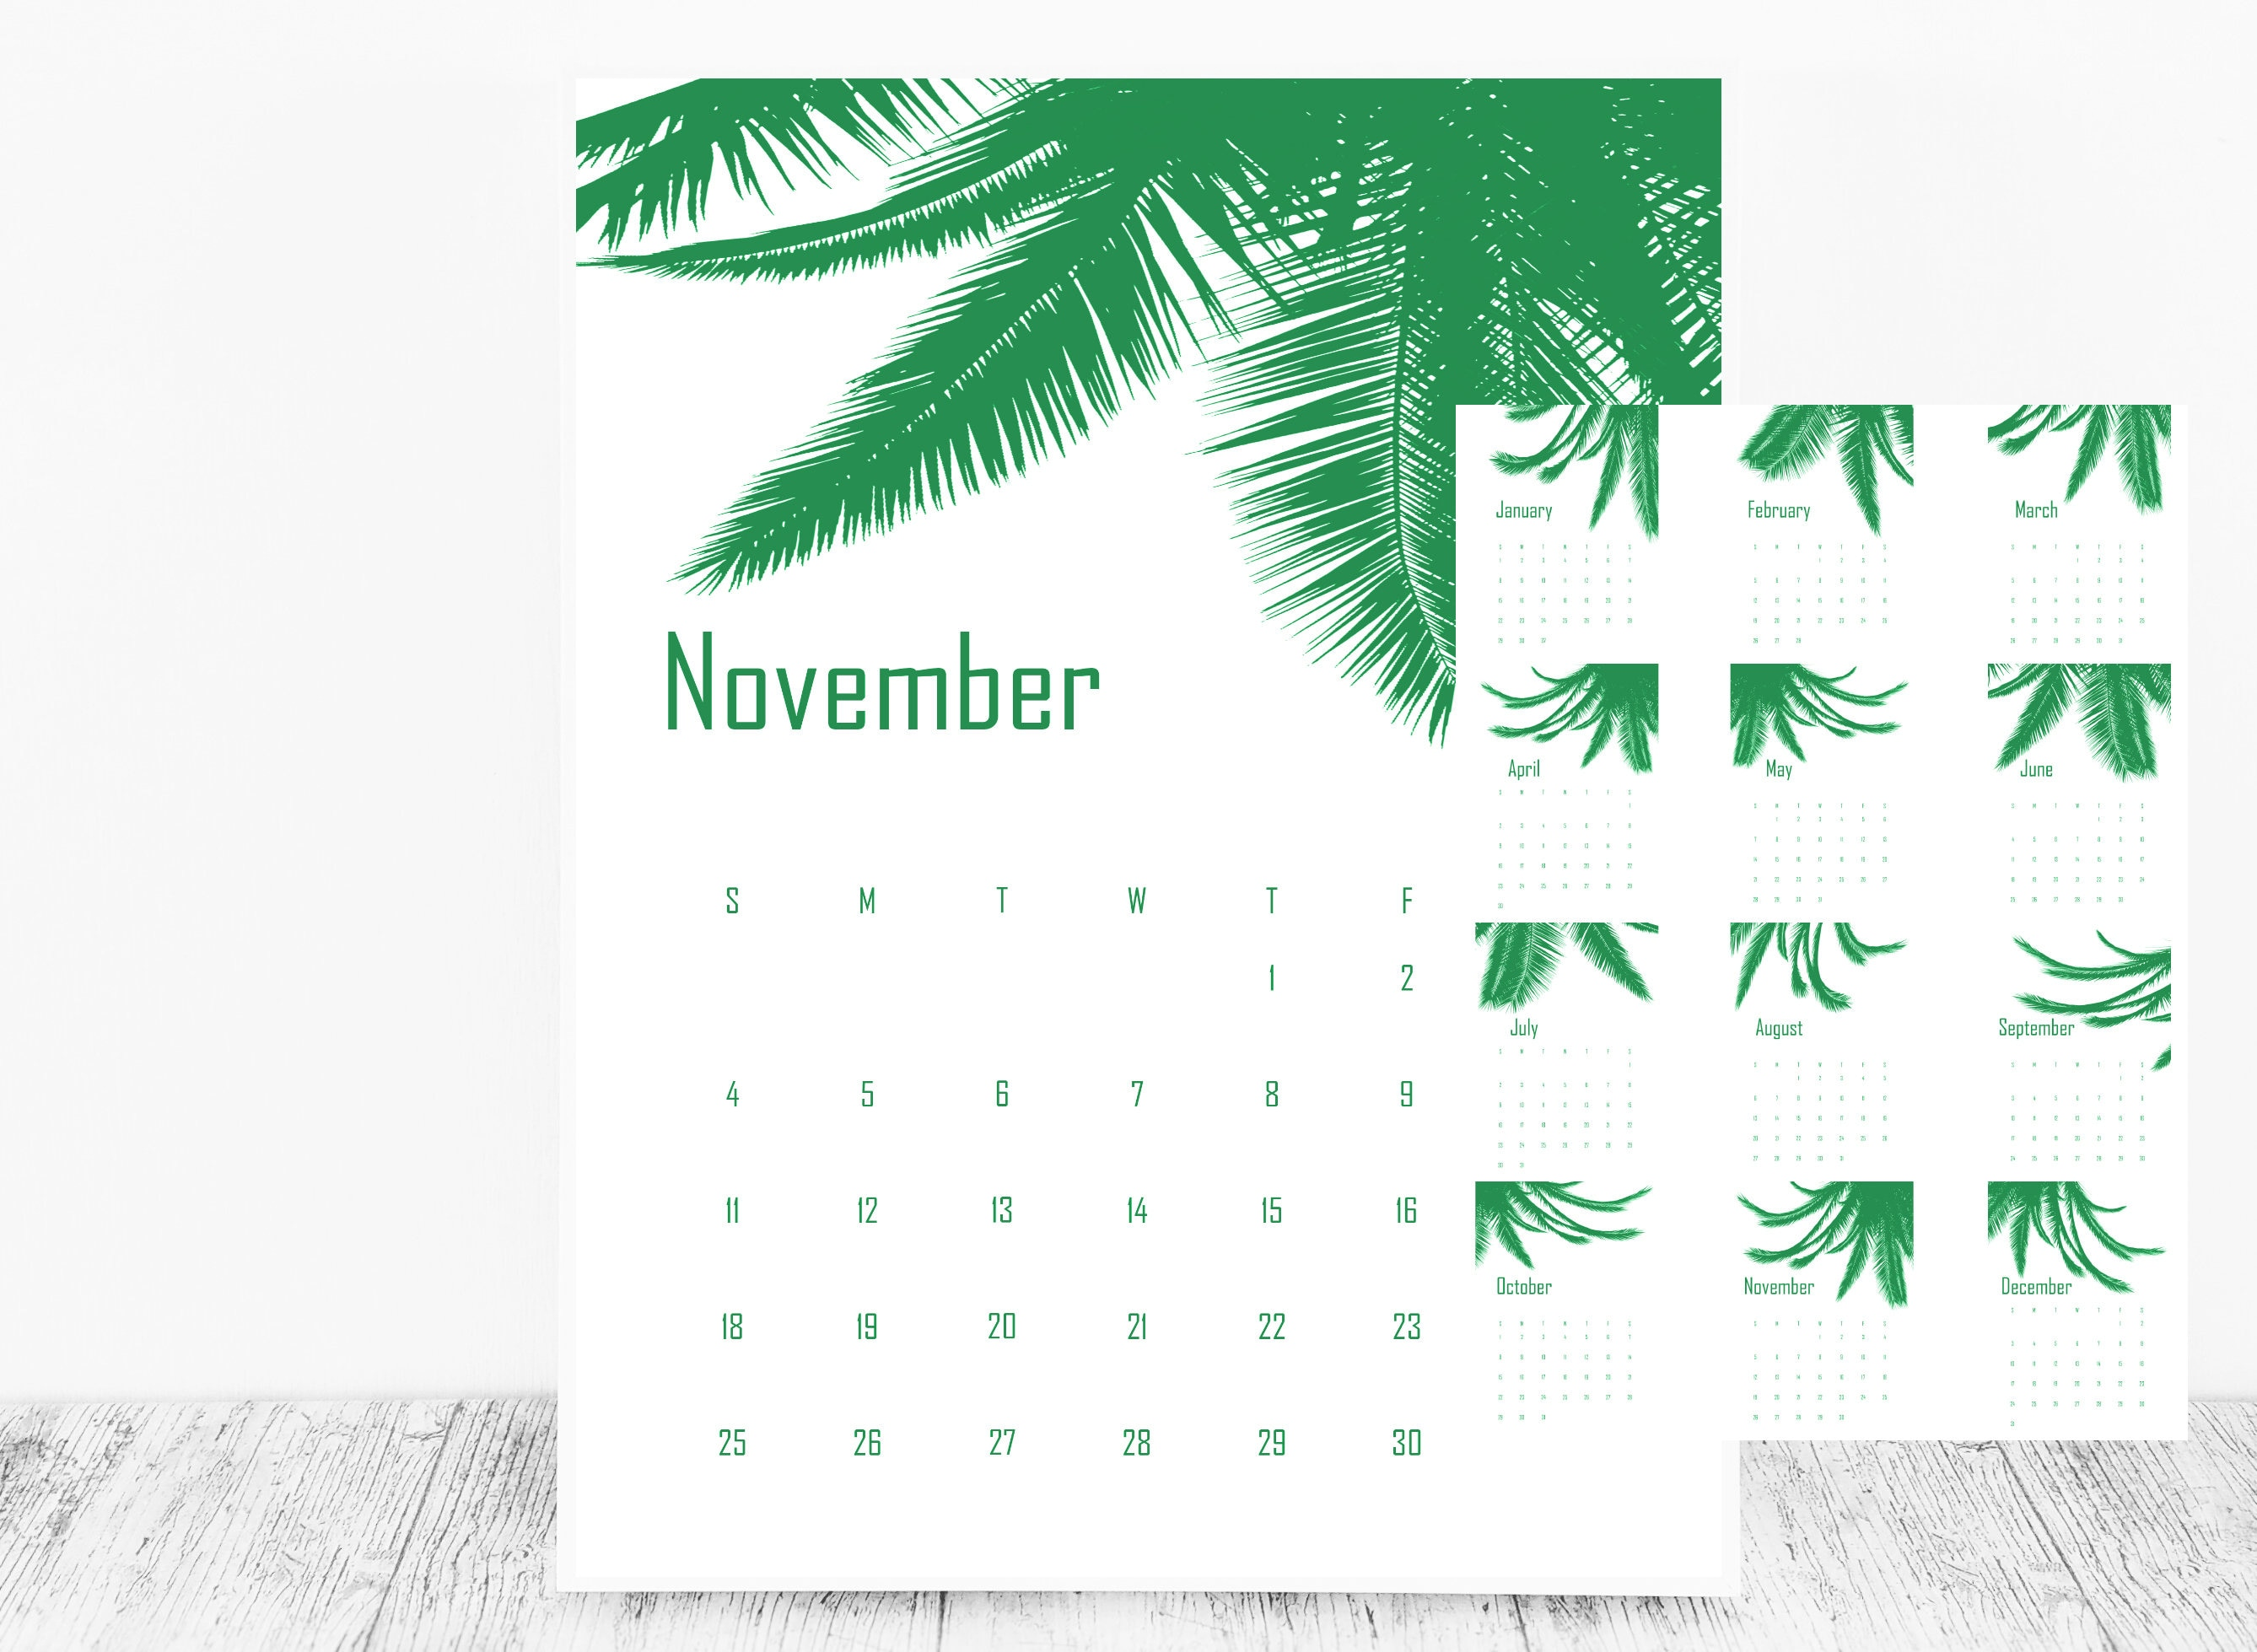 2017 2018 month planner december choice image ebooks 2017 2018 planner calendar calendar month